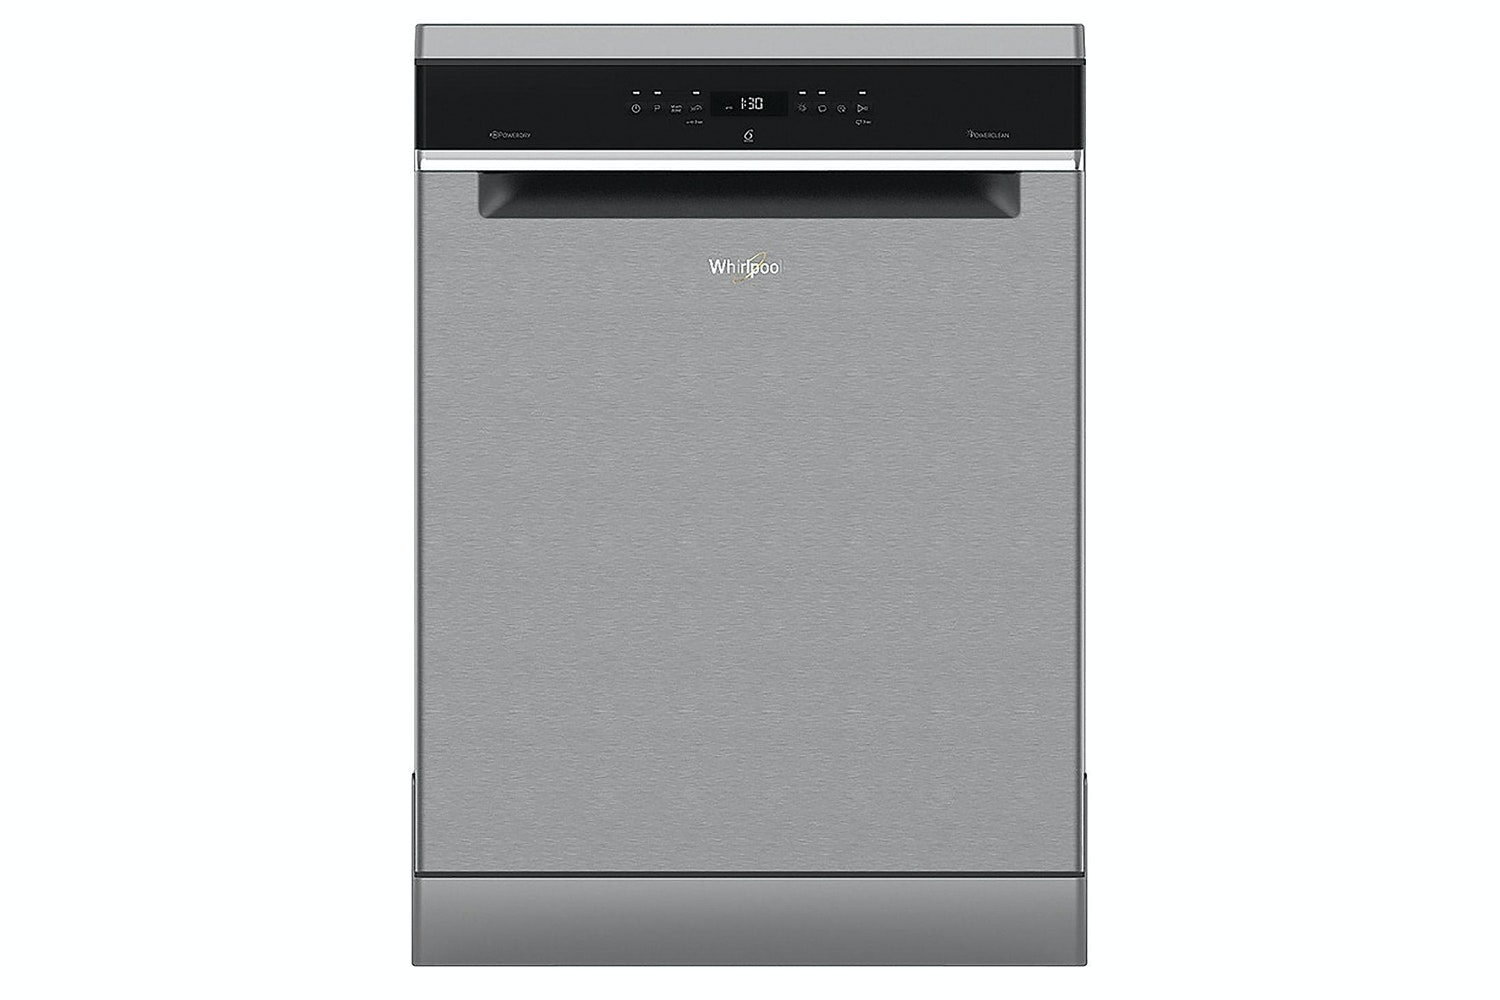 Whirlpool Supreme Clean Free Standing Dishwasher | 14 Place | WFO3P33DLX